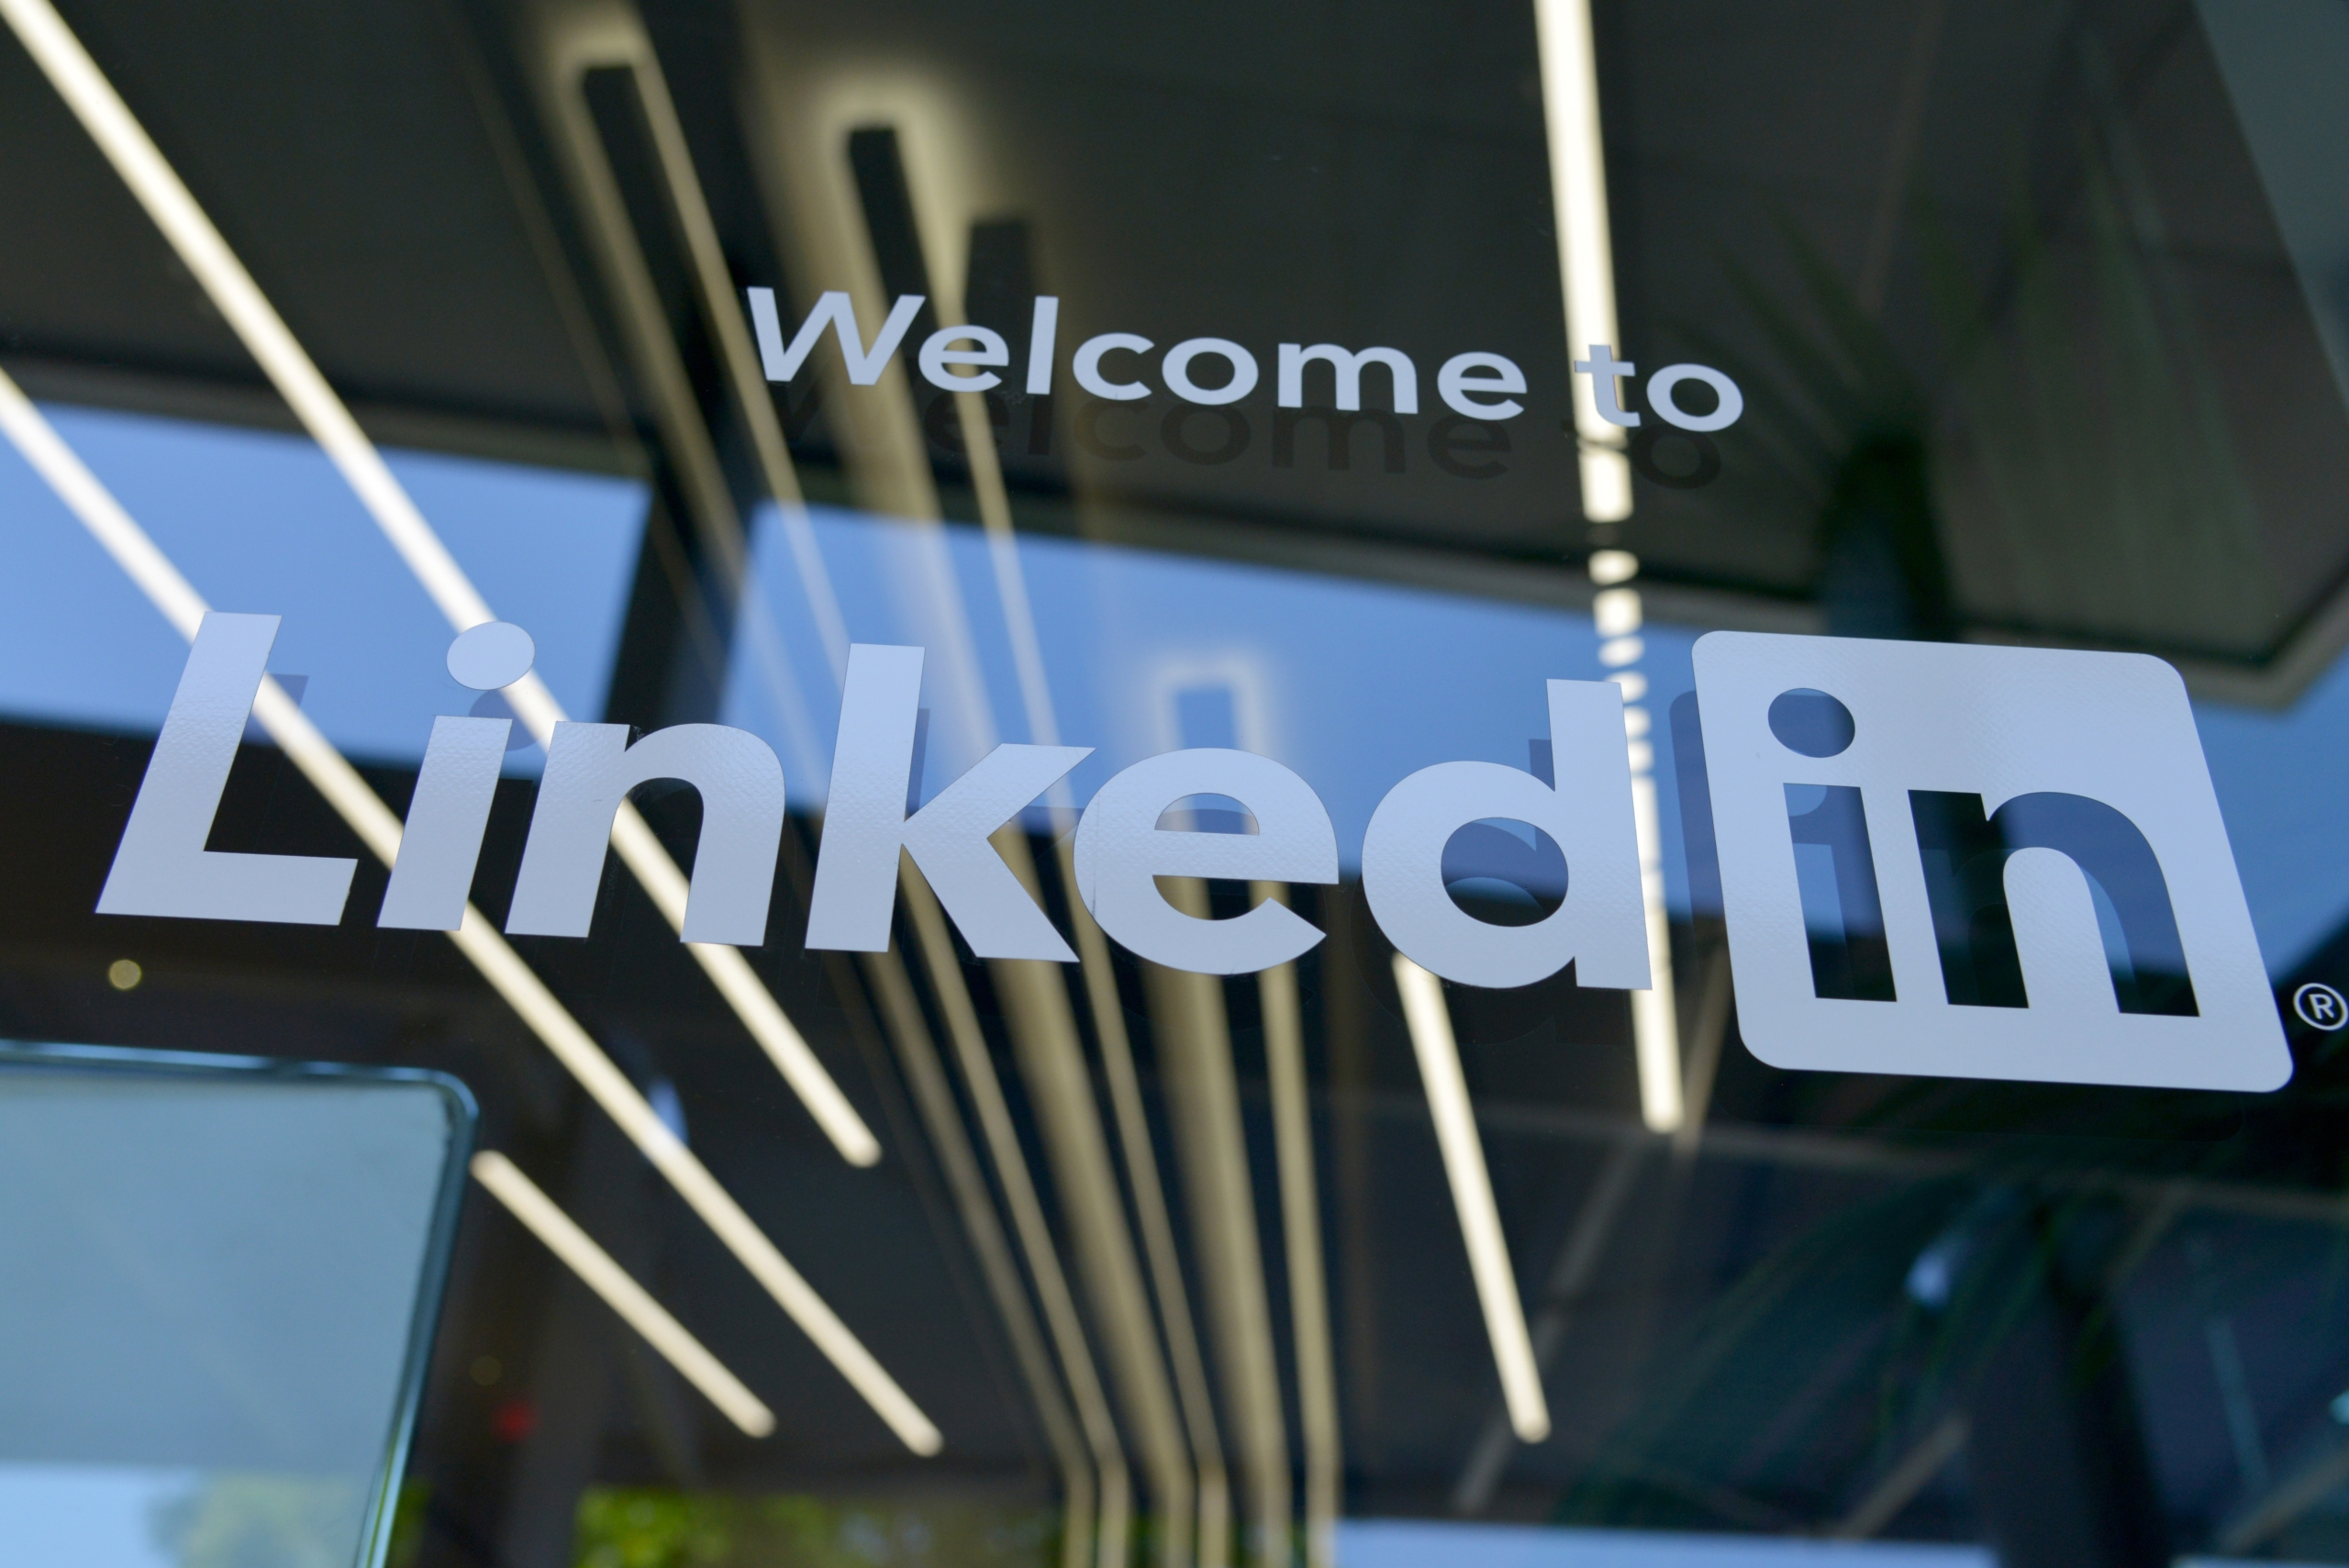 Are you making the most of LinkedIn? Top 10 things you can do to up your LinkedIn game.